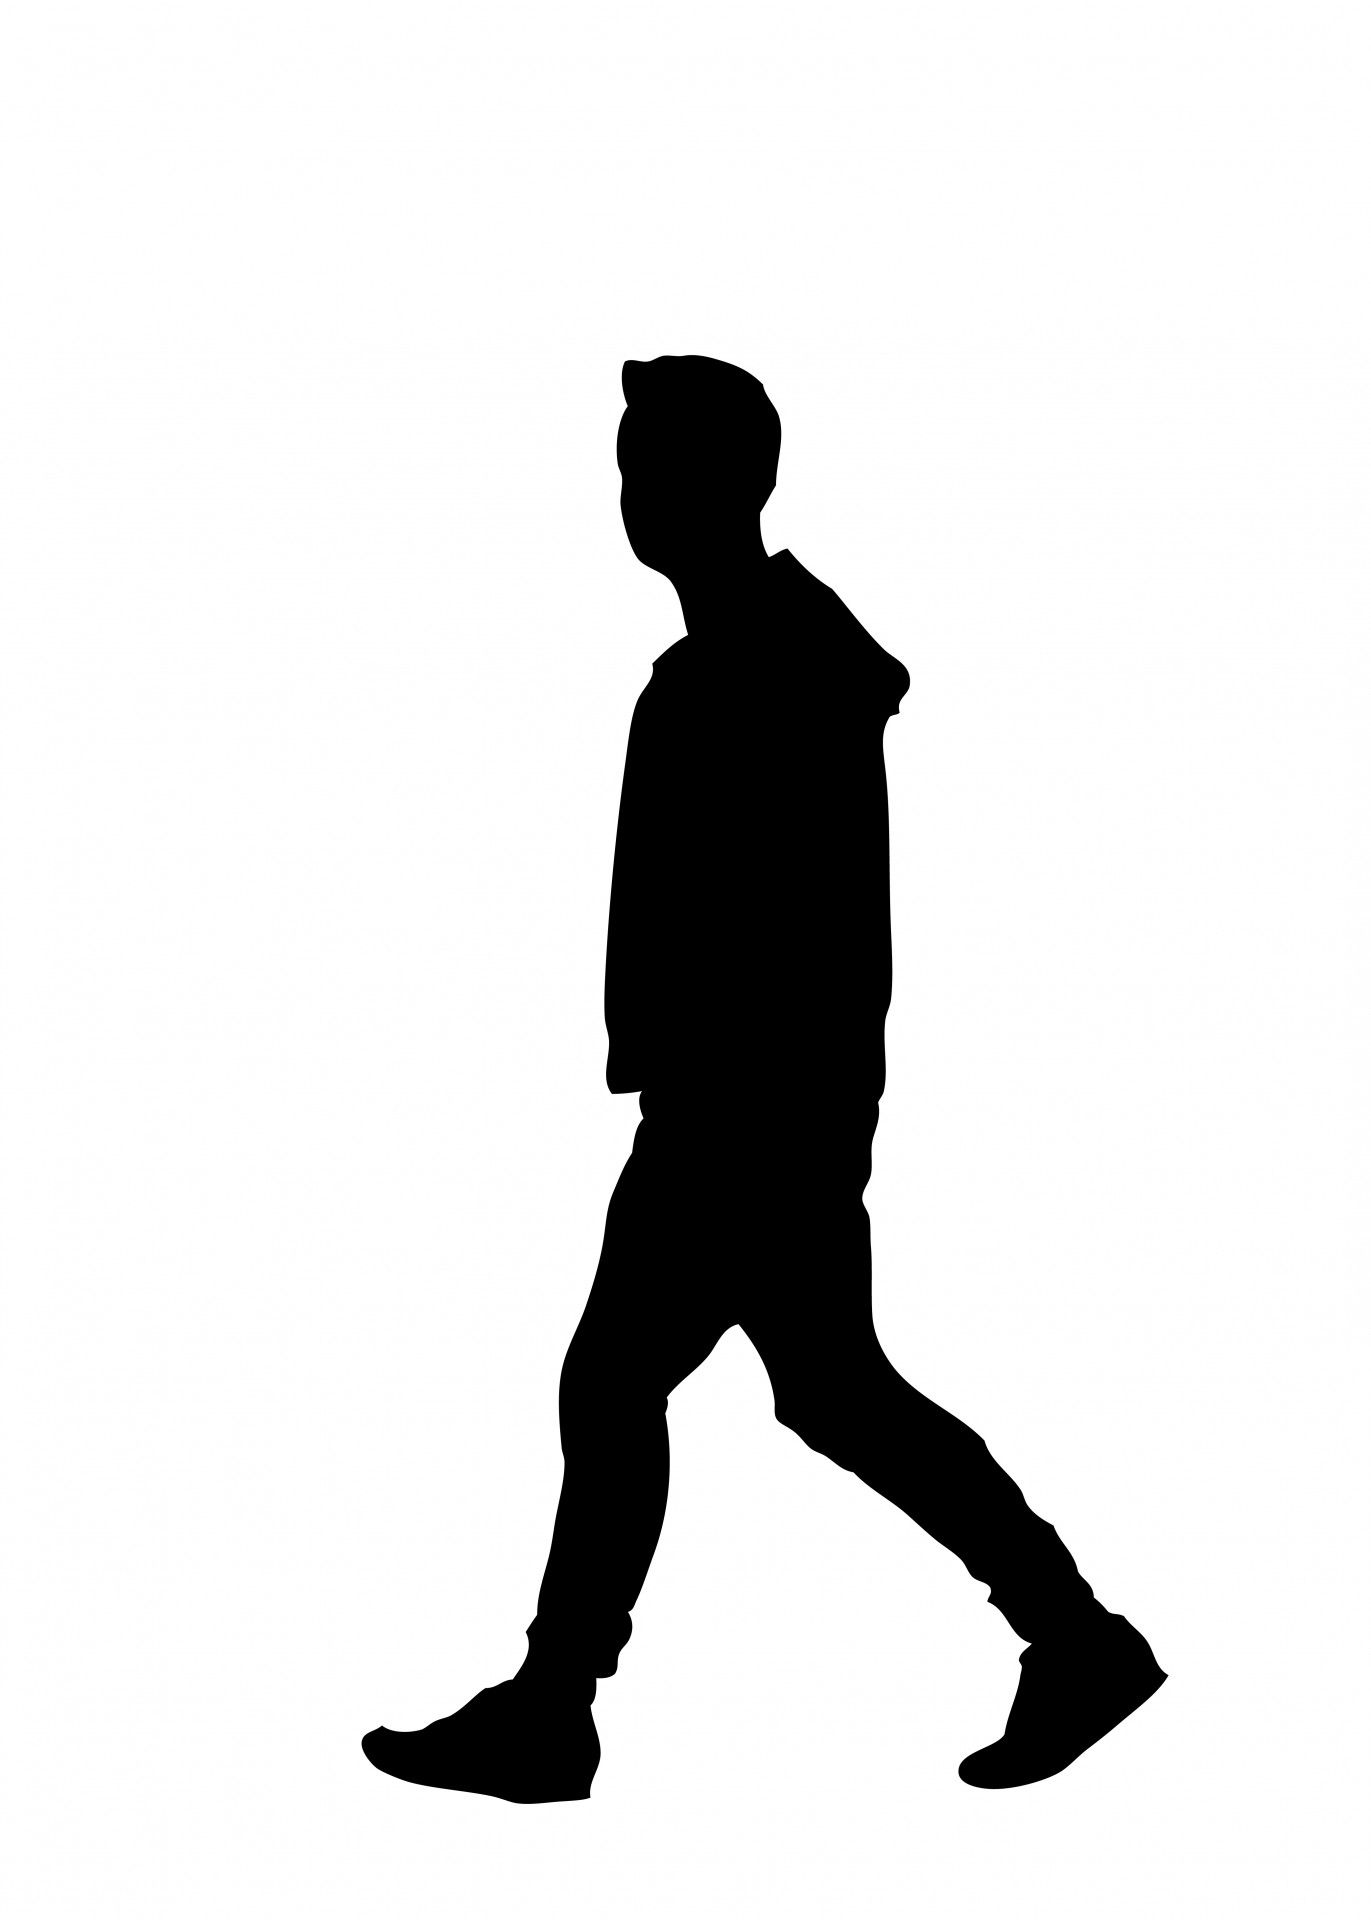 Black and white figure walking away into the night clipart banner People Walking Away Silhouette at GetDrawings.com | Free for ... banner